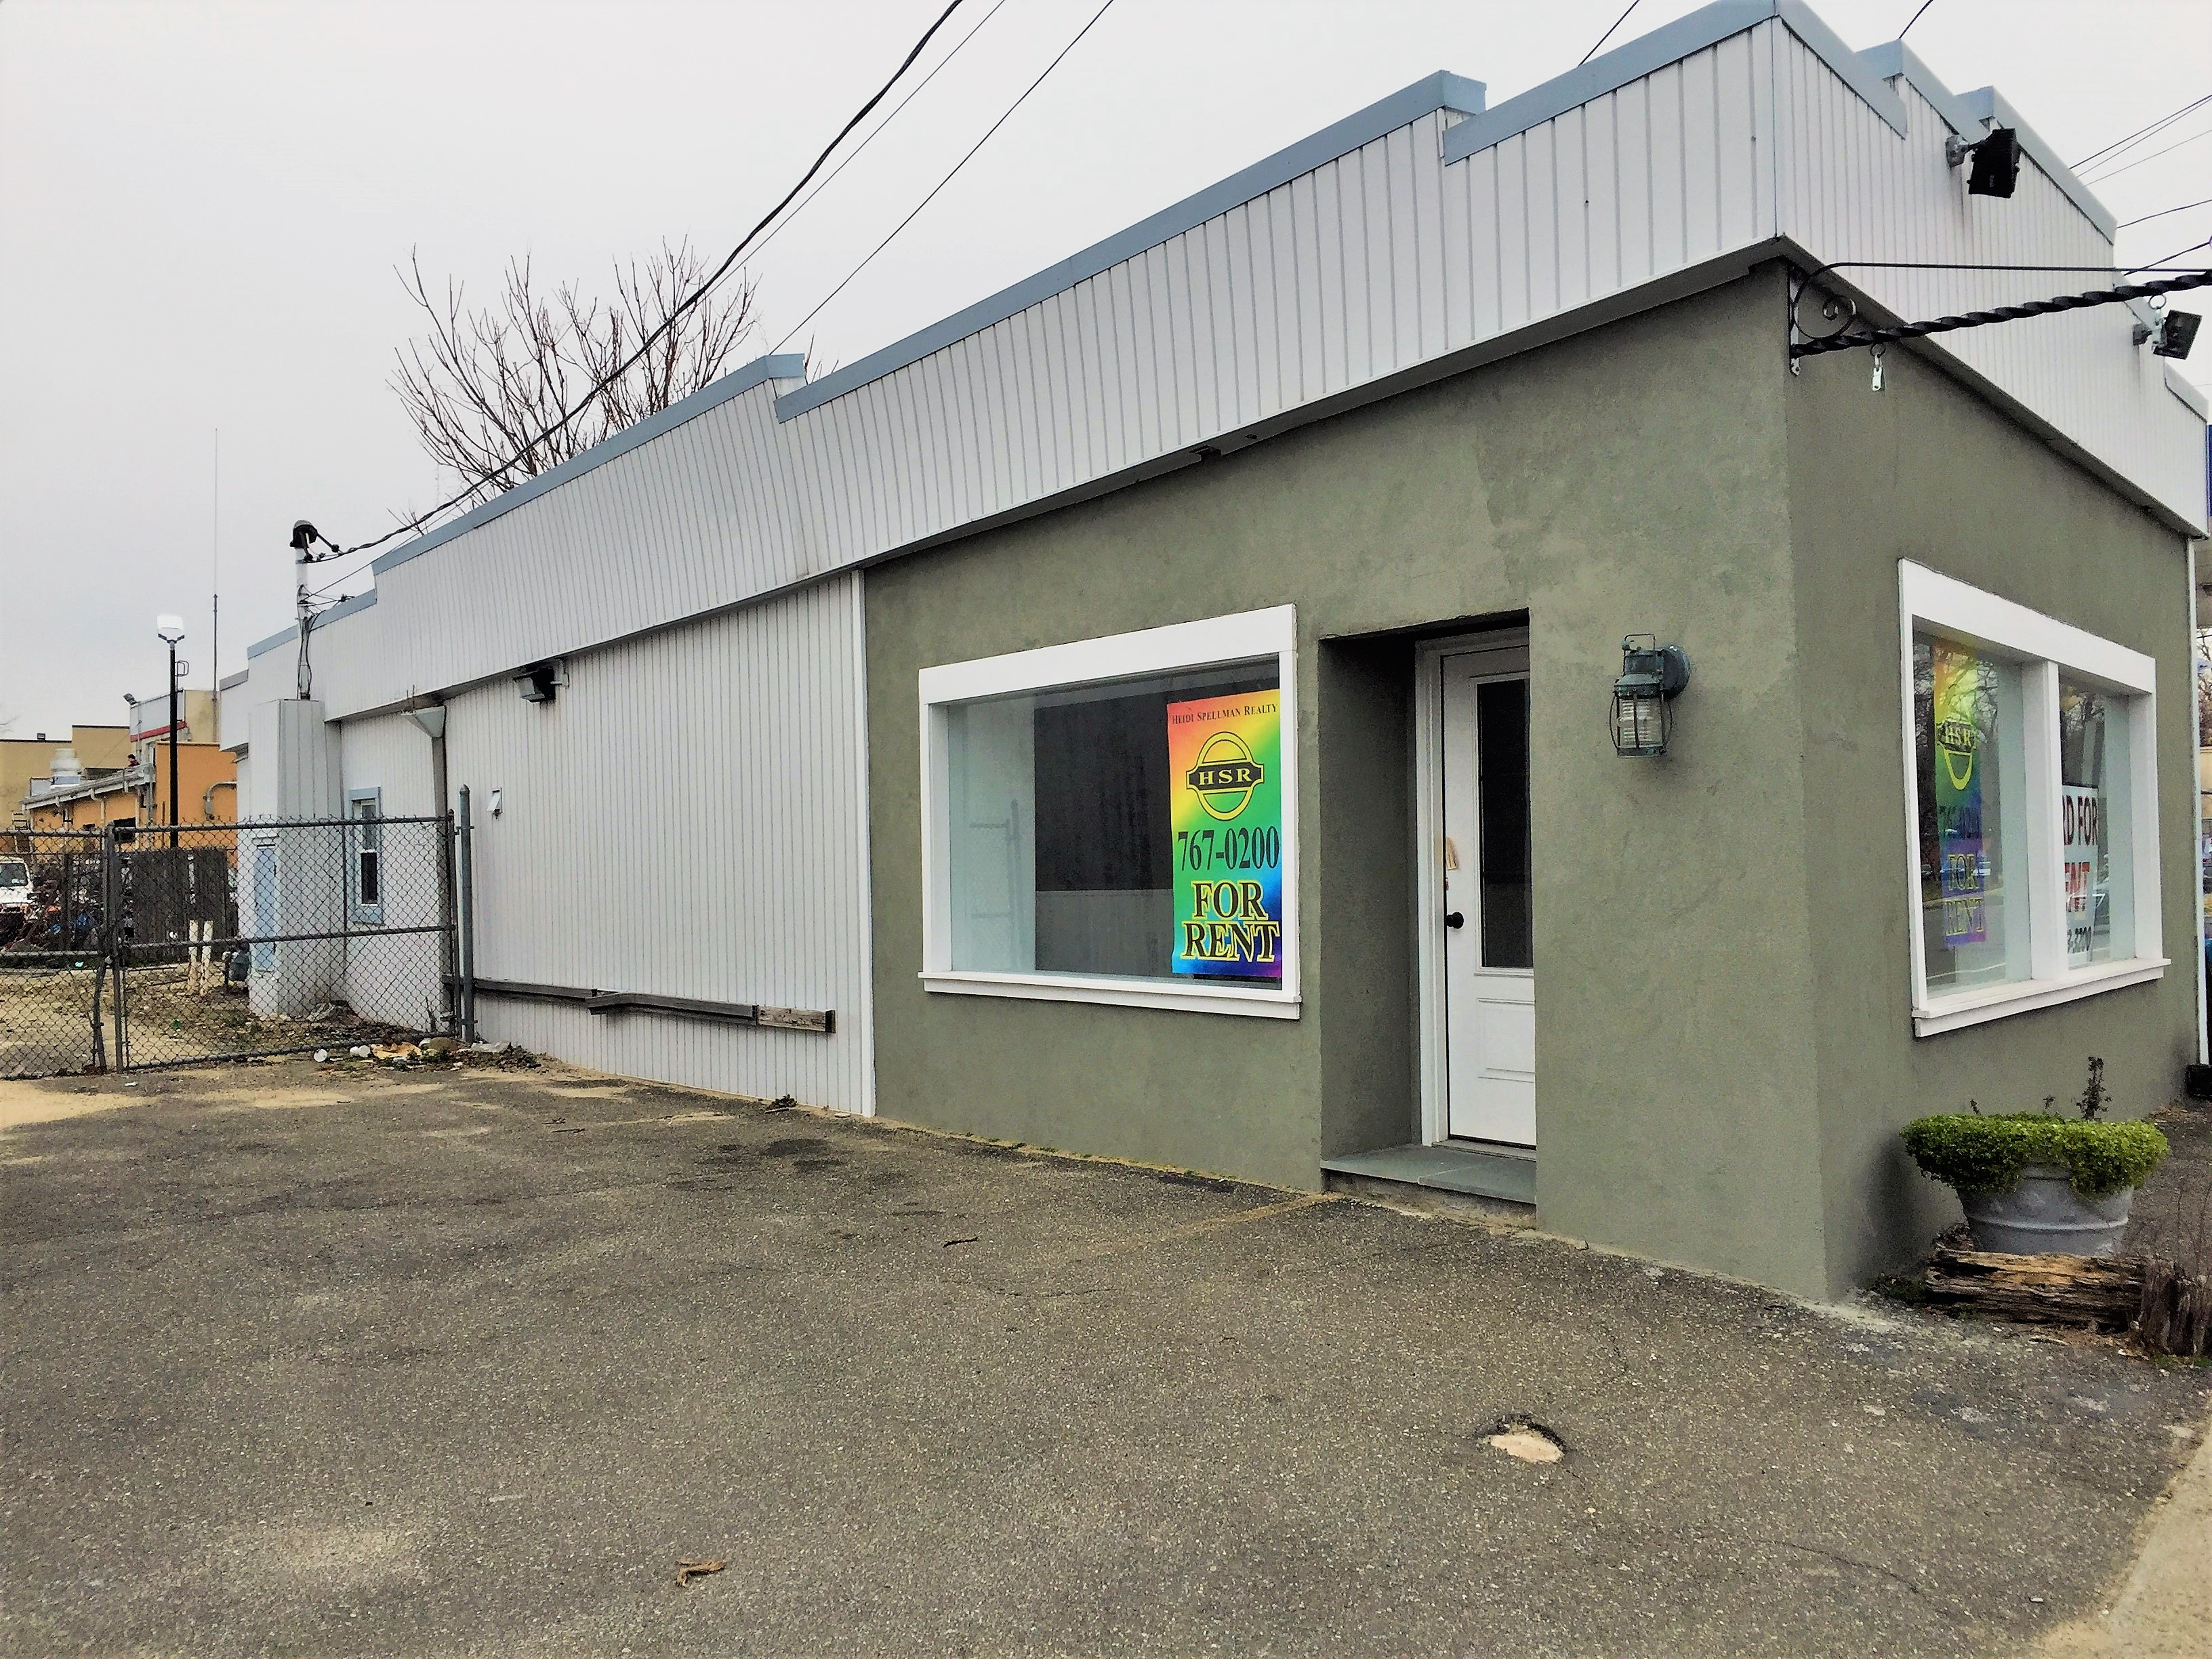 A free standing store front, recently gutted and completely renovated. Awesome space with front 2/3 open floor plan and rear private office space - with built-in shelving - see pictures Amazing exposure to street traffic. Private parking lot in back of building. Storage room. new bathroom and kitchen area. A must see - a dynamite location to bring your business.  Facing 4 lanes of intense traffic flow. Next to a strip center with a Dunkin Donuts, hair salon, laundry mat, perfume store, Pizzeria - Across from a shopping center with Target, HSBC, Rite Aide, movie theatre, GNC, Ace Hardware and more. Cars traveling to 2 elementary schools, Manorhaven Beach Park, and Sands Point all must pass this location. There is a private fenced parking lot for 6-8 cars - A must see to appreciate